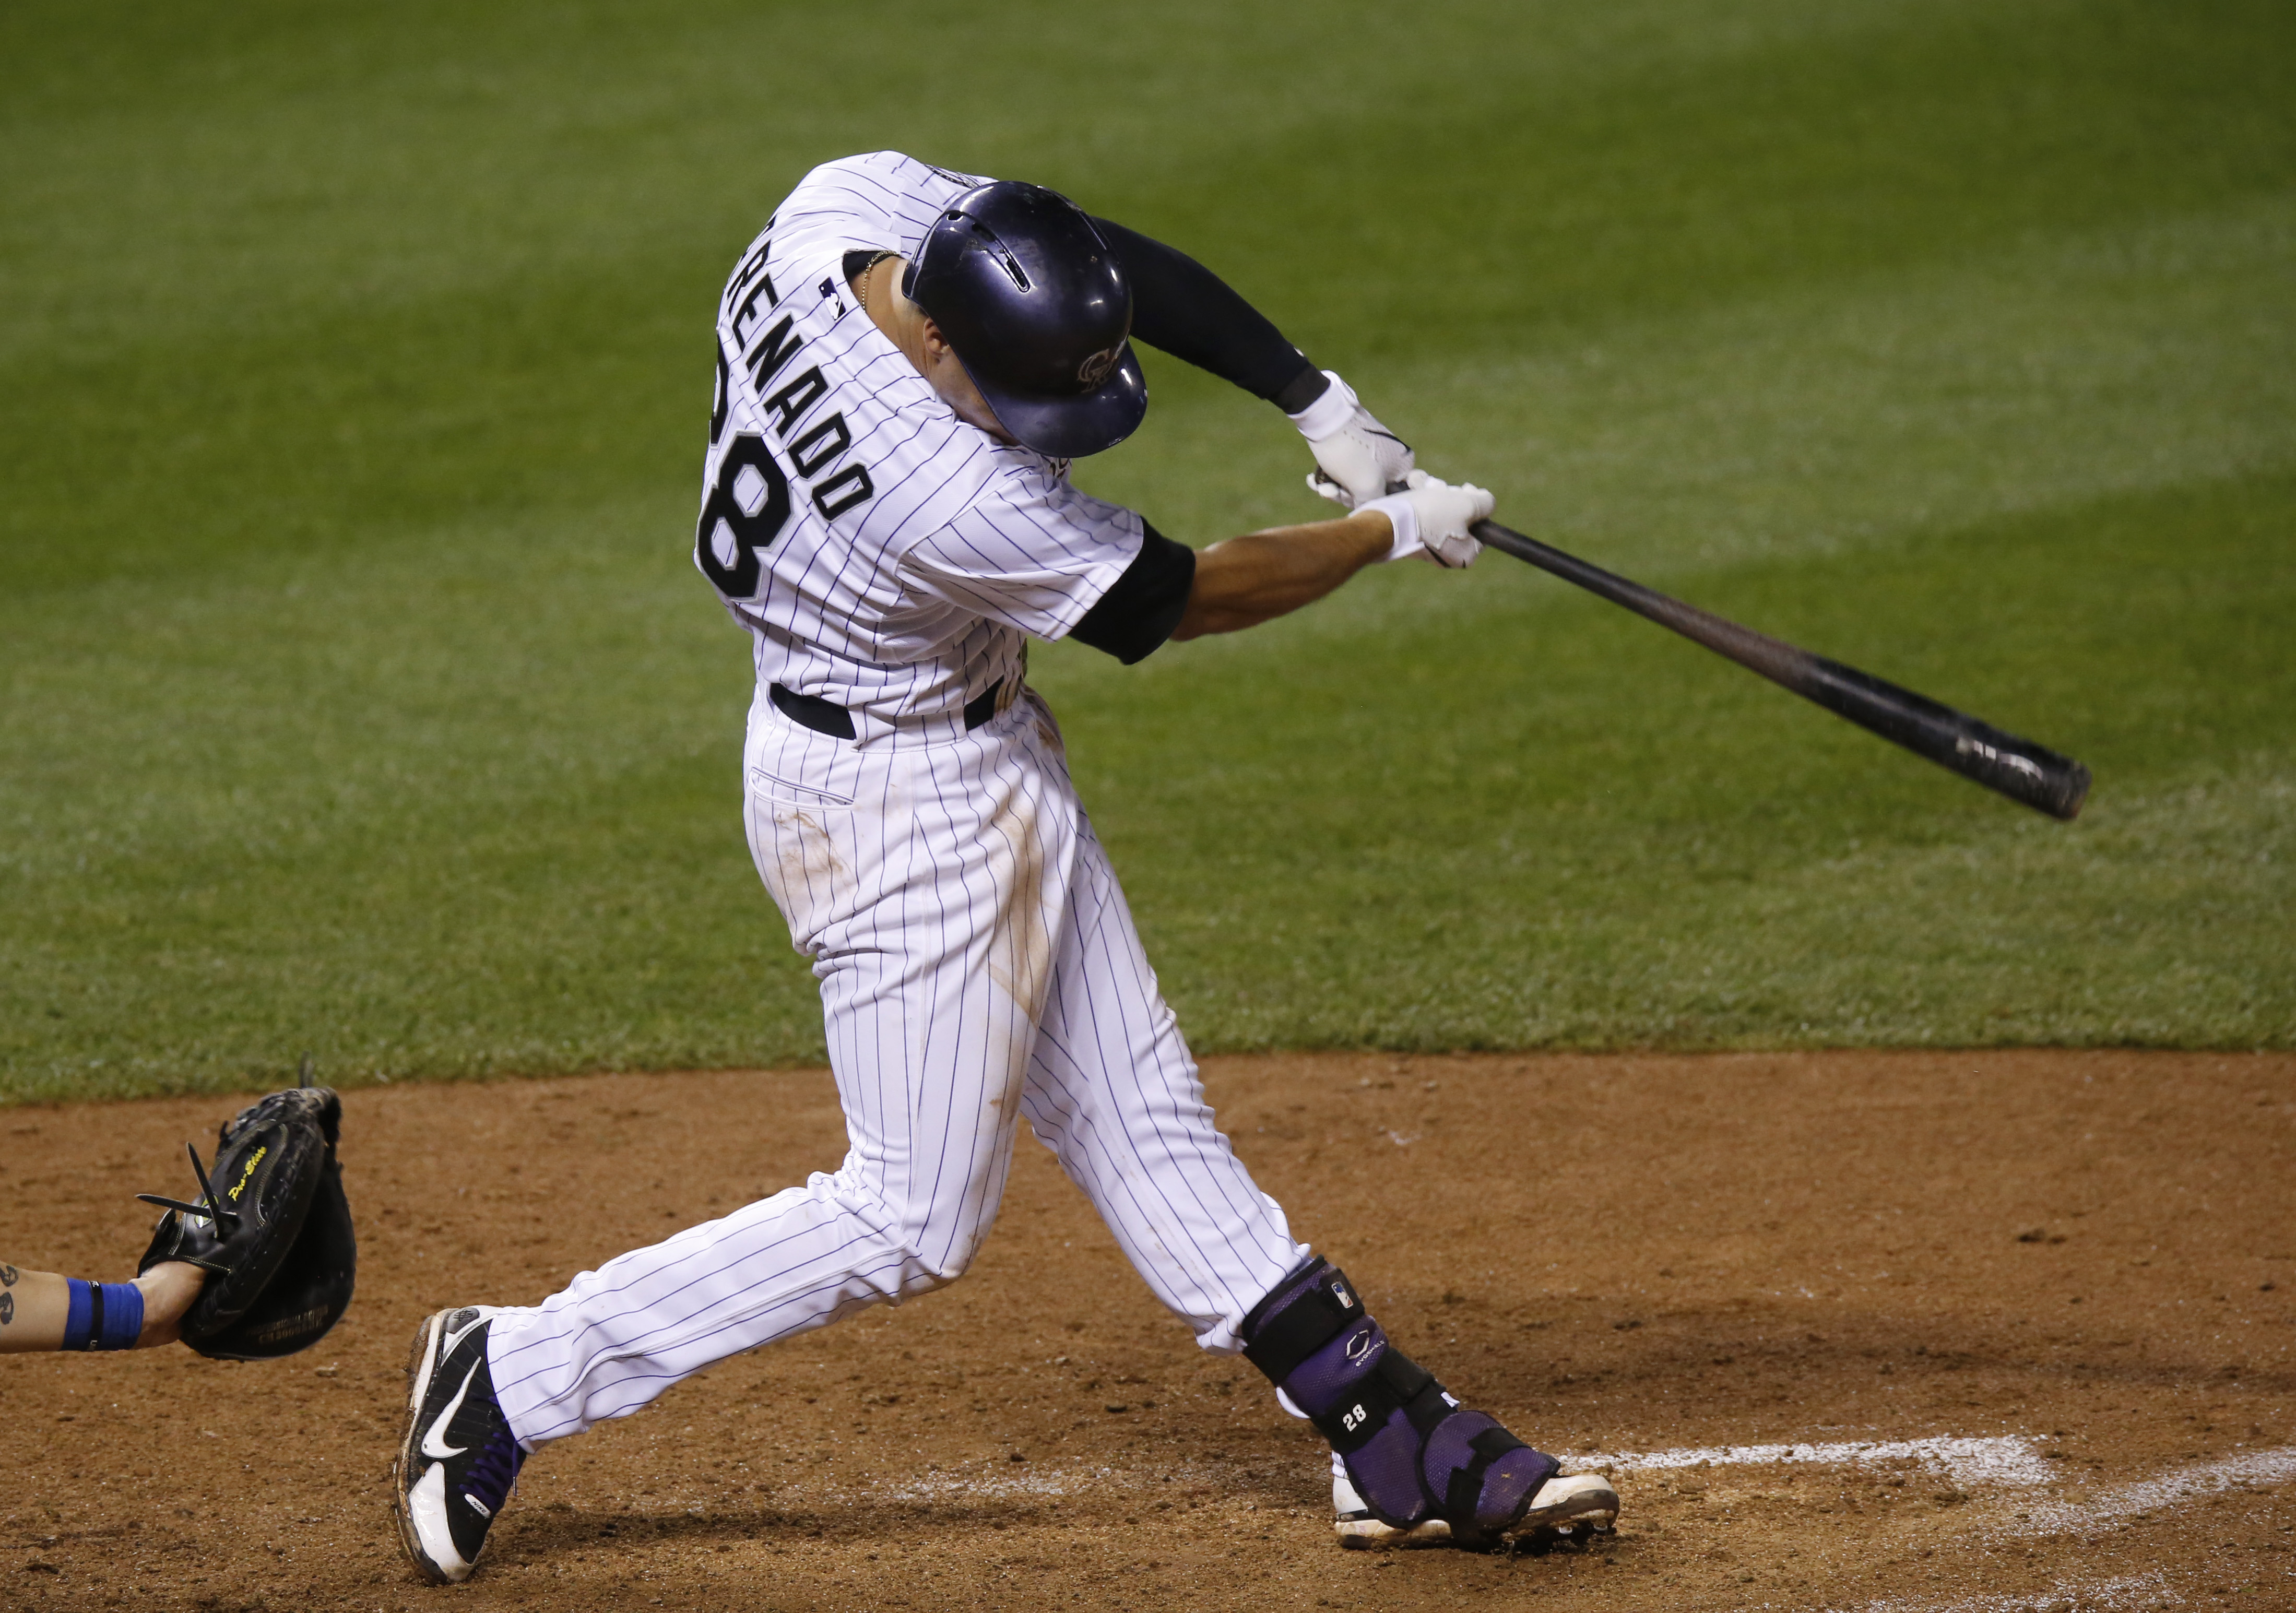 Colorado Rockies' Nolan Arenado hits a walk off sacrifice fly to bring in the winning run off Los Angeles Dodgers relief pitcher Chris Hatcher in the bottom of the ninth inning of a baseball game early Thursday, June 4, 2015, in Denver. Colorado won 7-6.